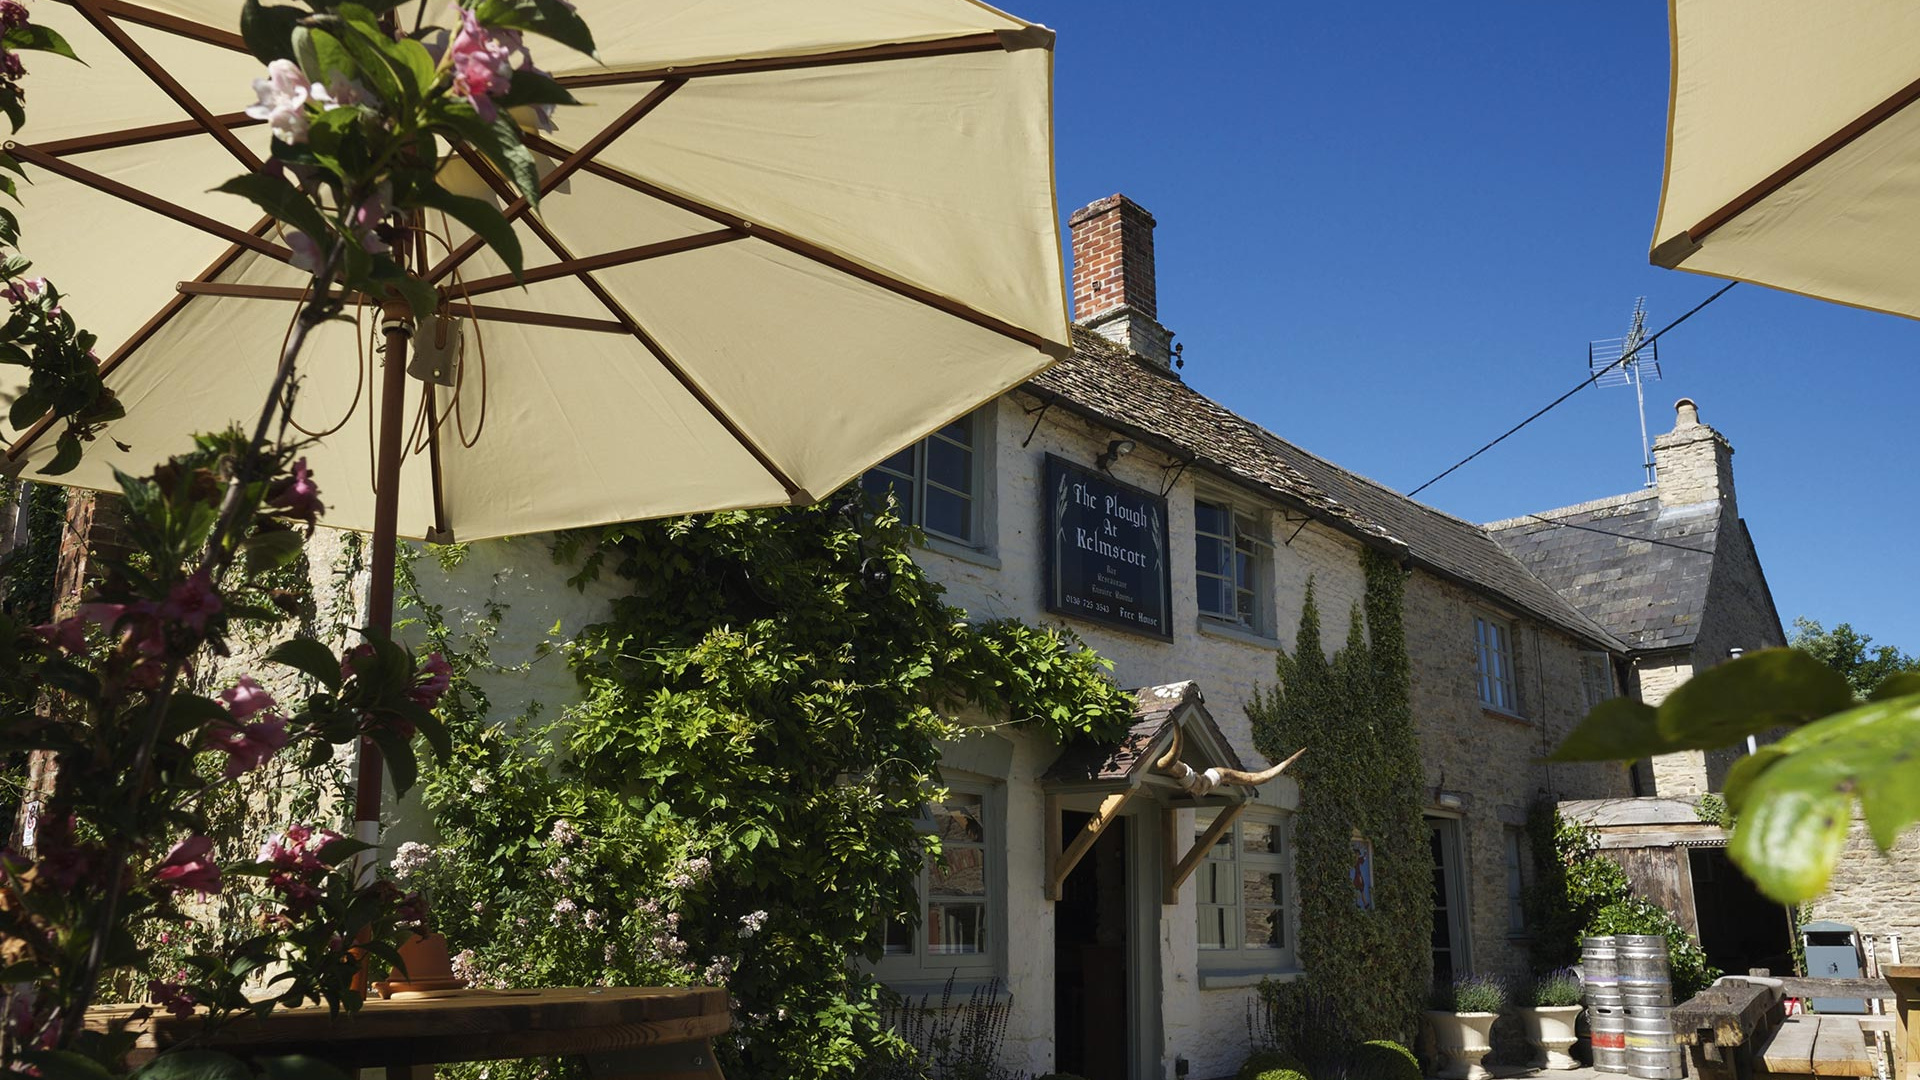 Uk Hotel Review The Plough At Kelmscott Oxfordshire